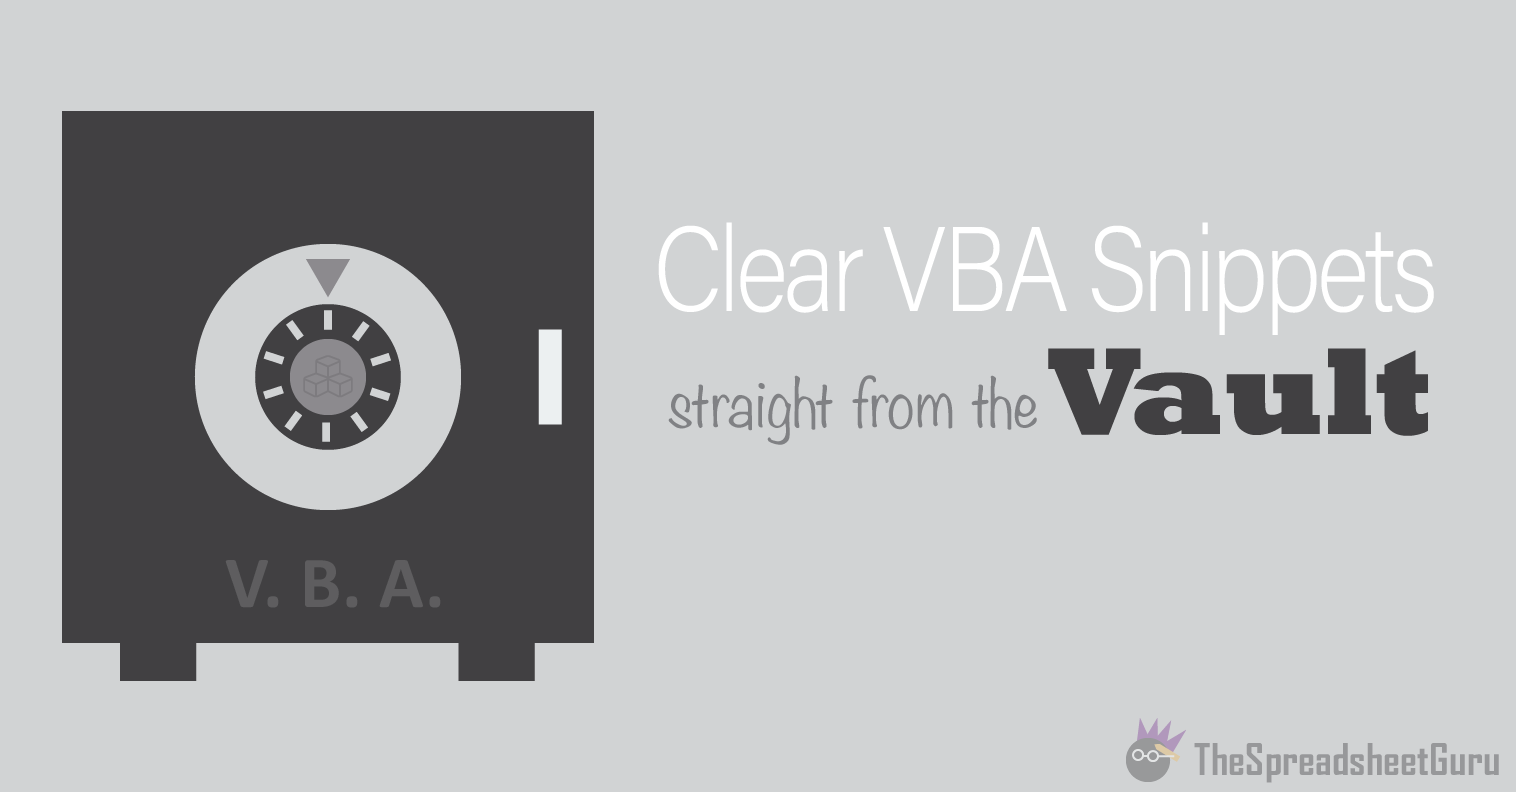 Apply Math to all Numerical Values Embedded in Text With VBA & Regular Expressions